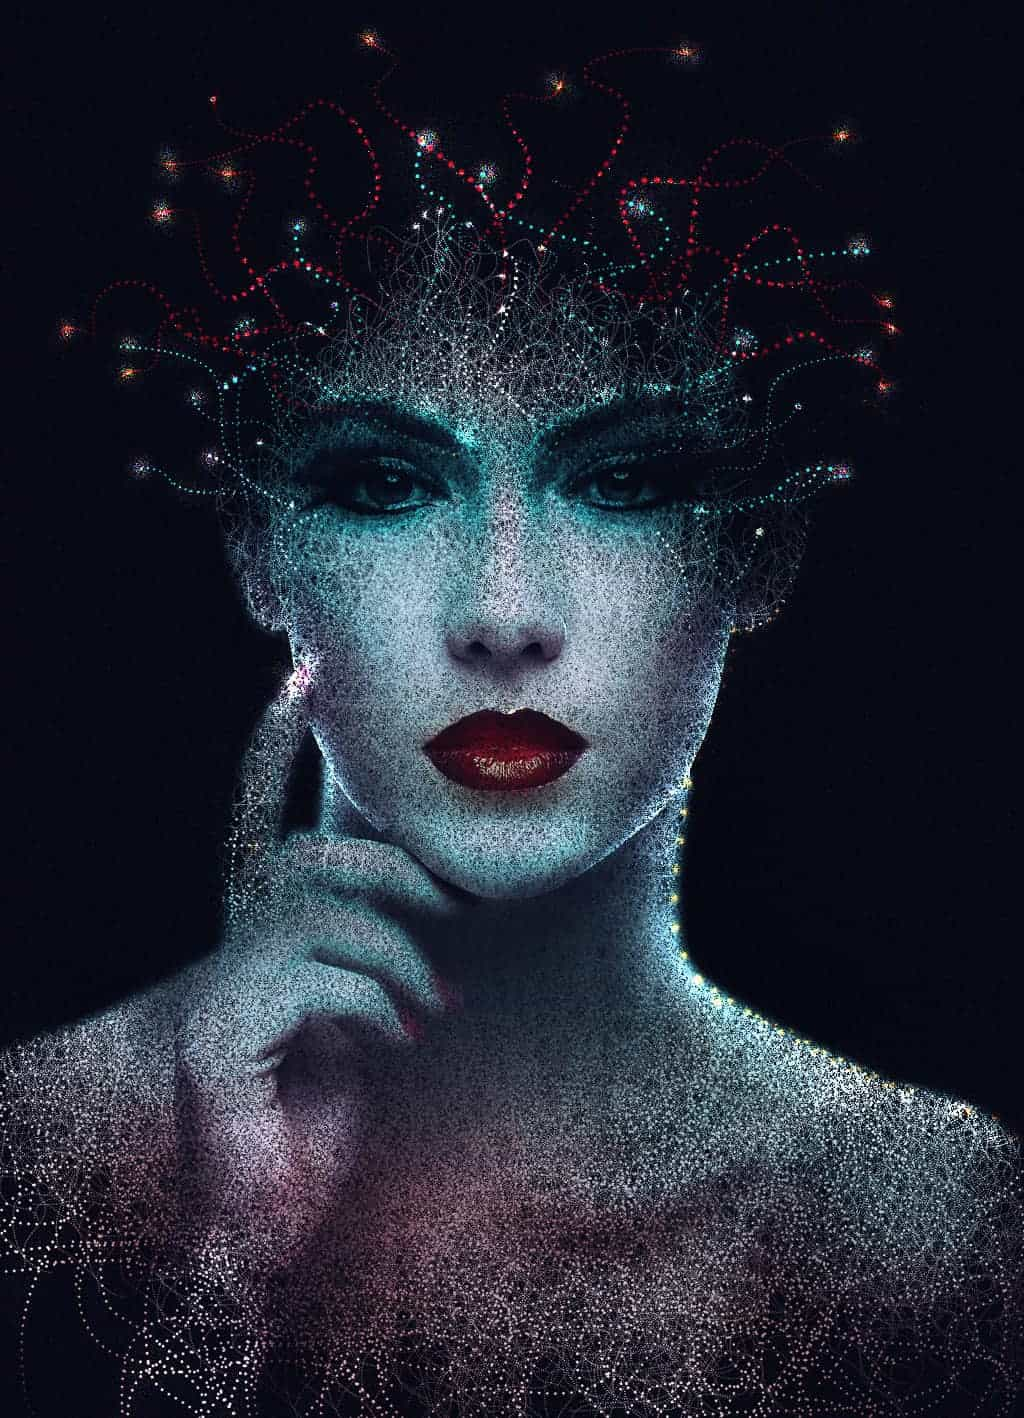 Create an Abstract Portrait in Photoshop